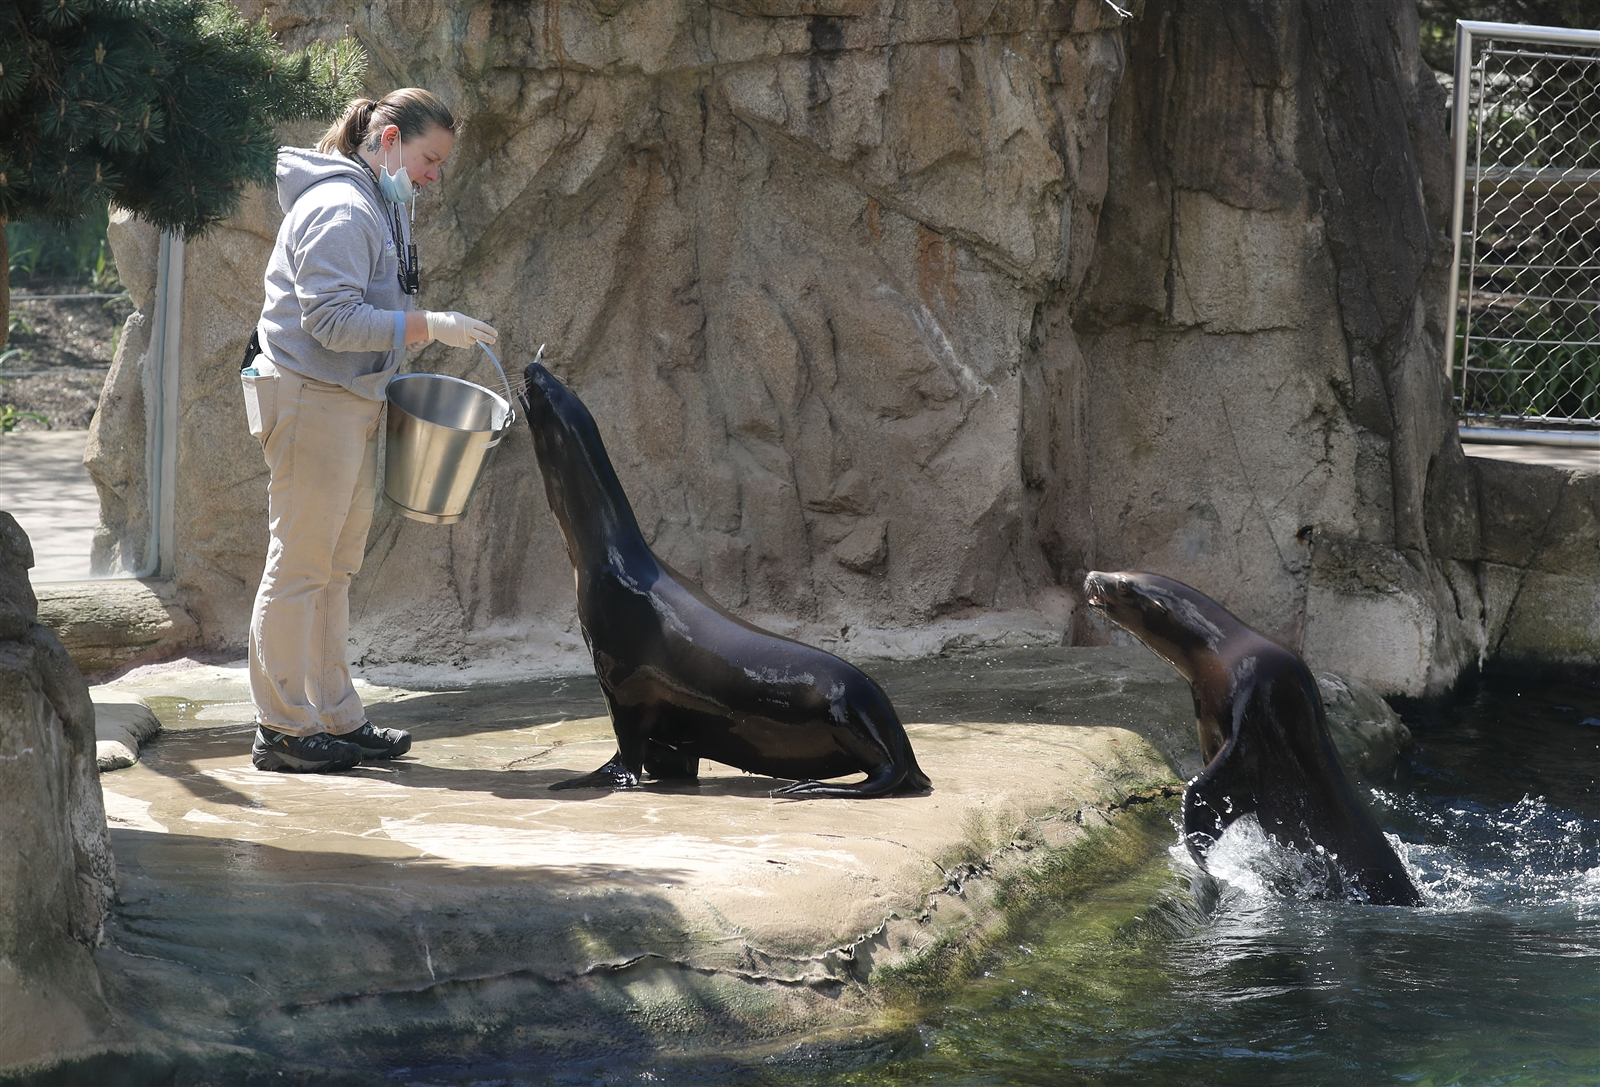 Lynn Hougle feeds Pokey and Jesse, both California sea lions at the Buffalo Zoo.